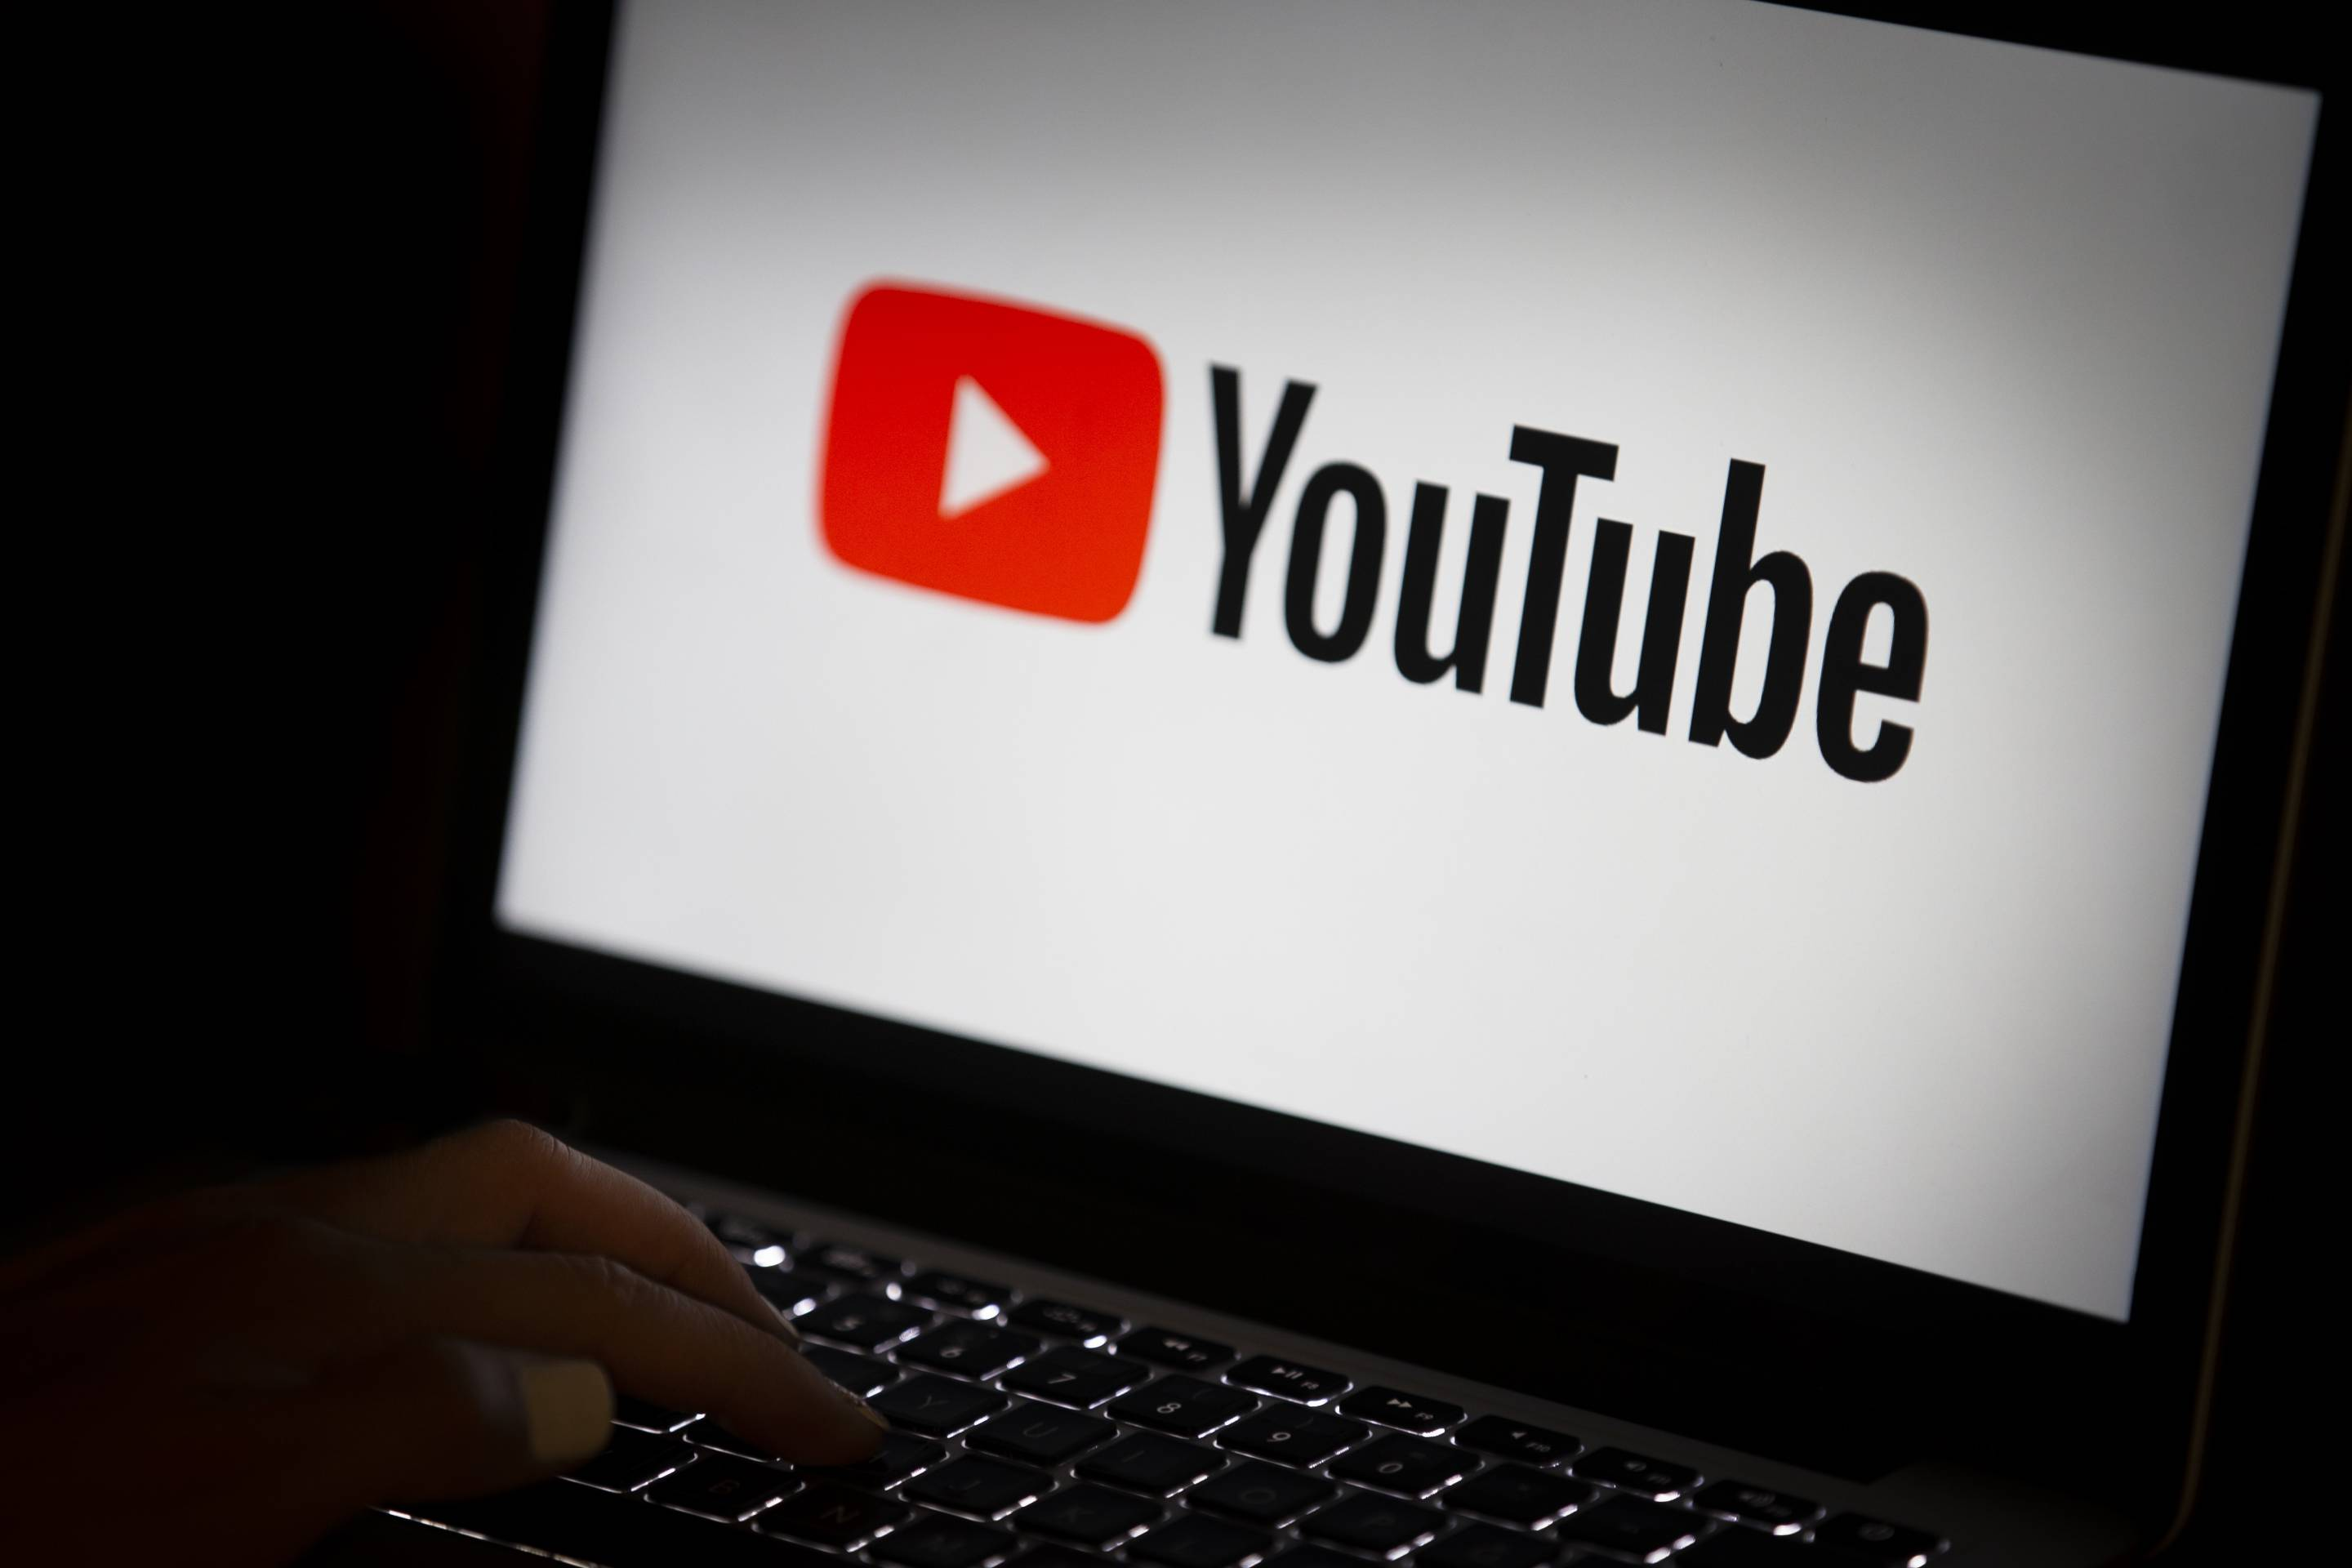 YouTube steers viewers to climate denial videos: US activist group